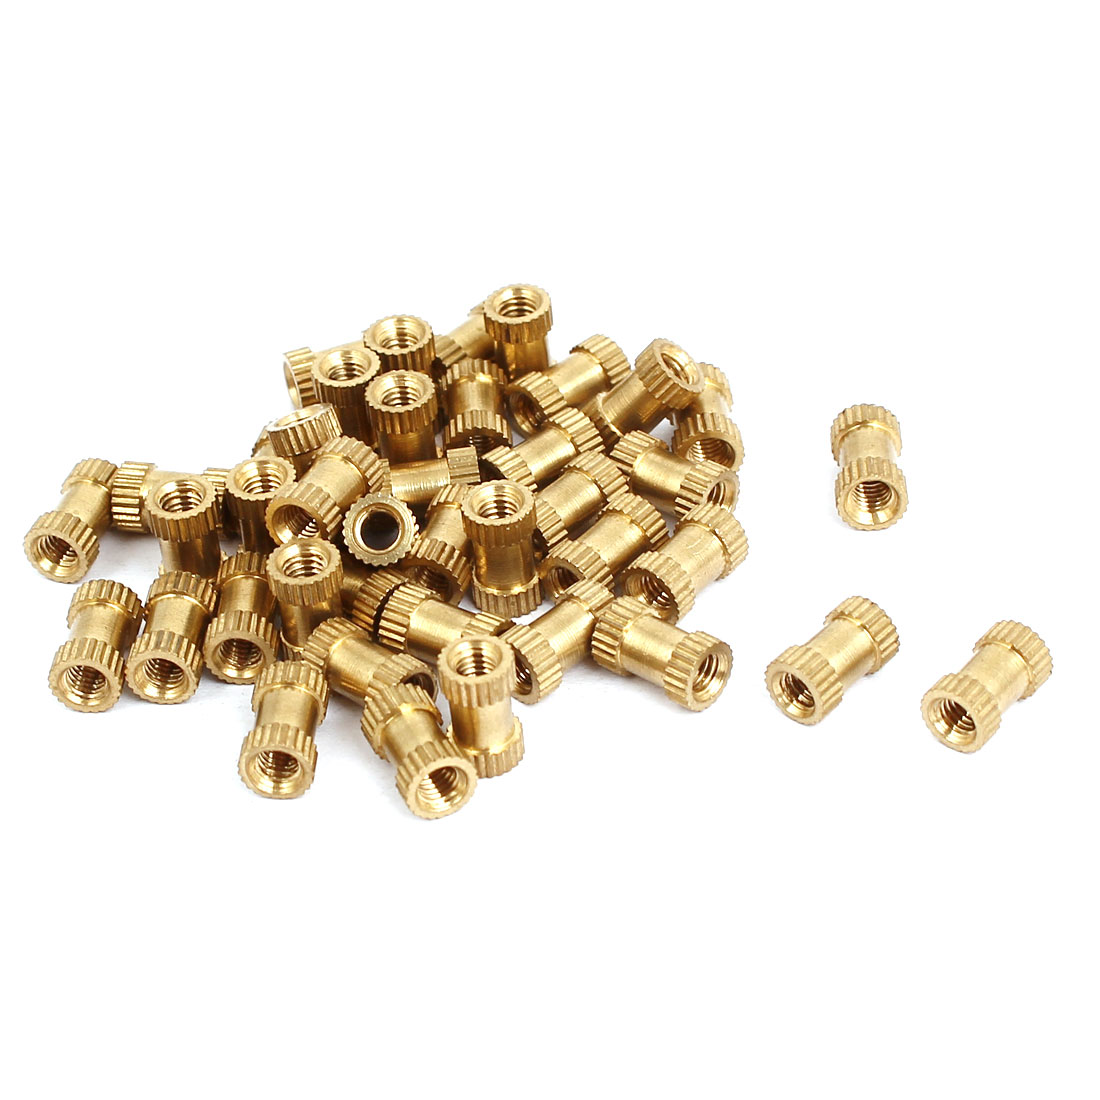 M3x8mmx5mm Female Threaded Brass Knurled Insert Embedded Nuts Gold Tone 40pcs